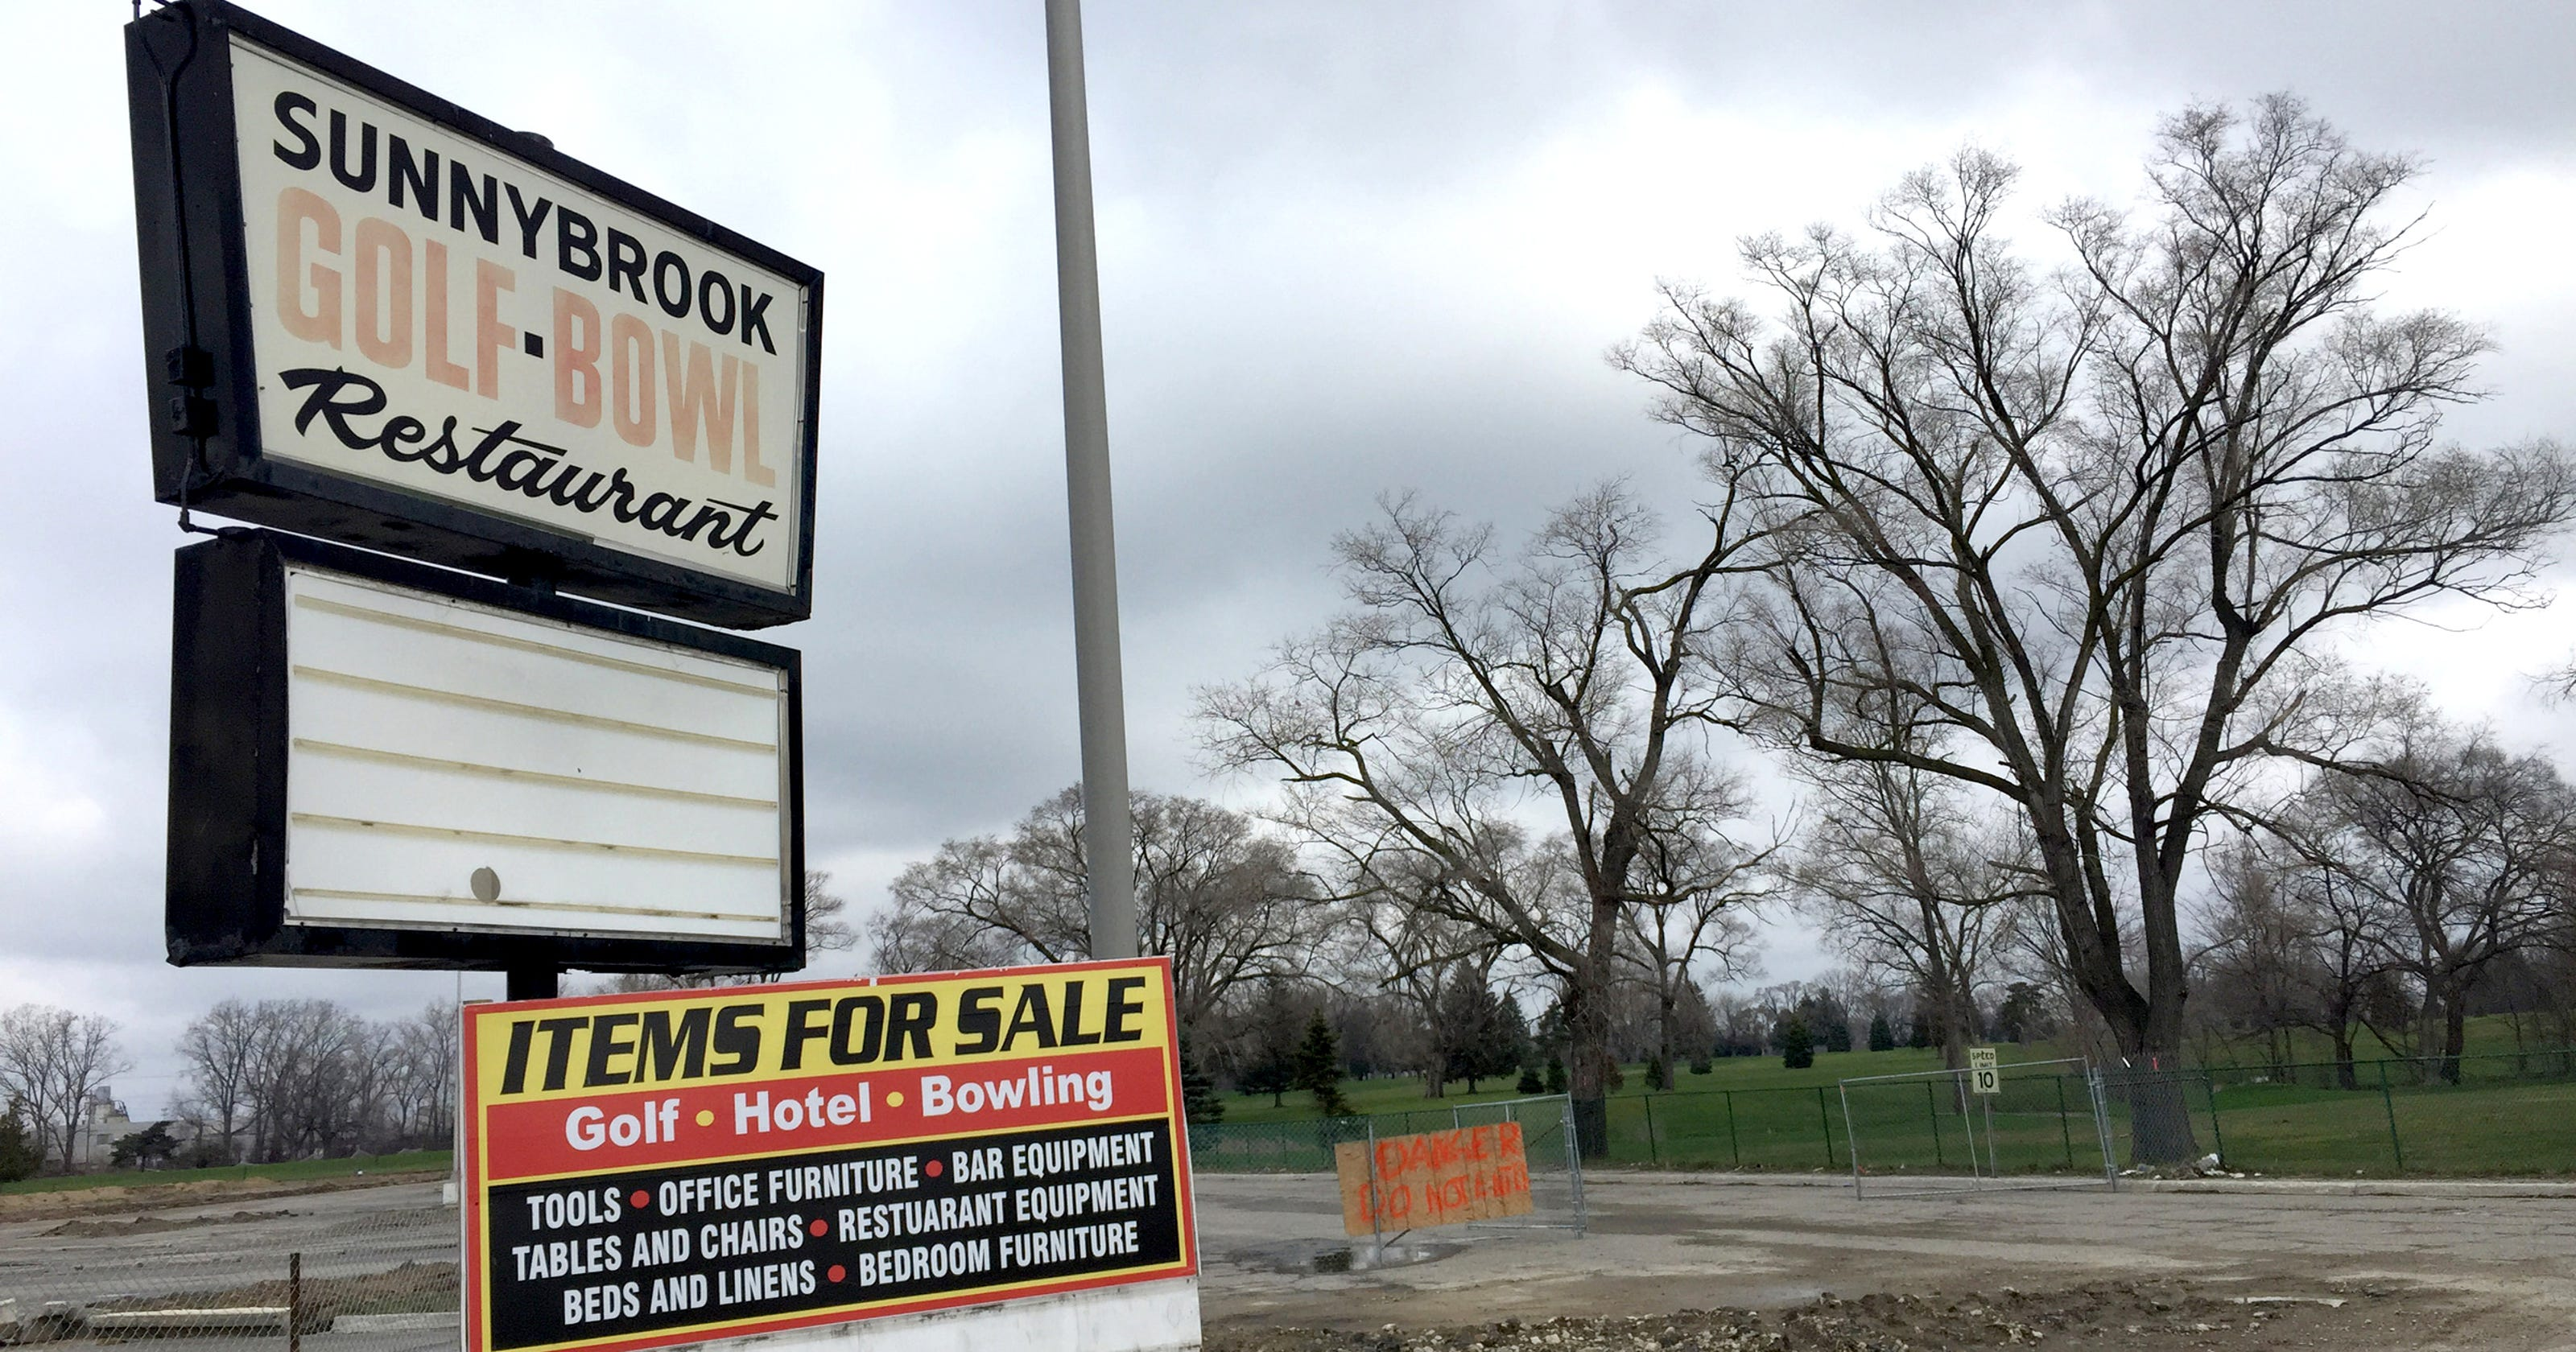 Michigan's golf course boom is now a painful bust